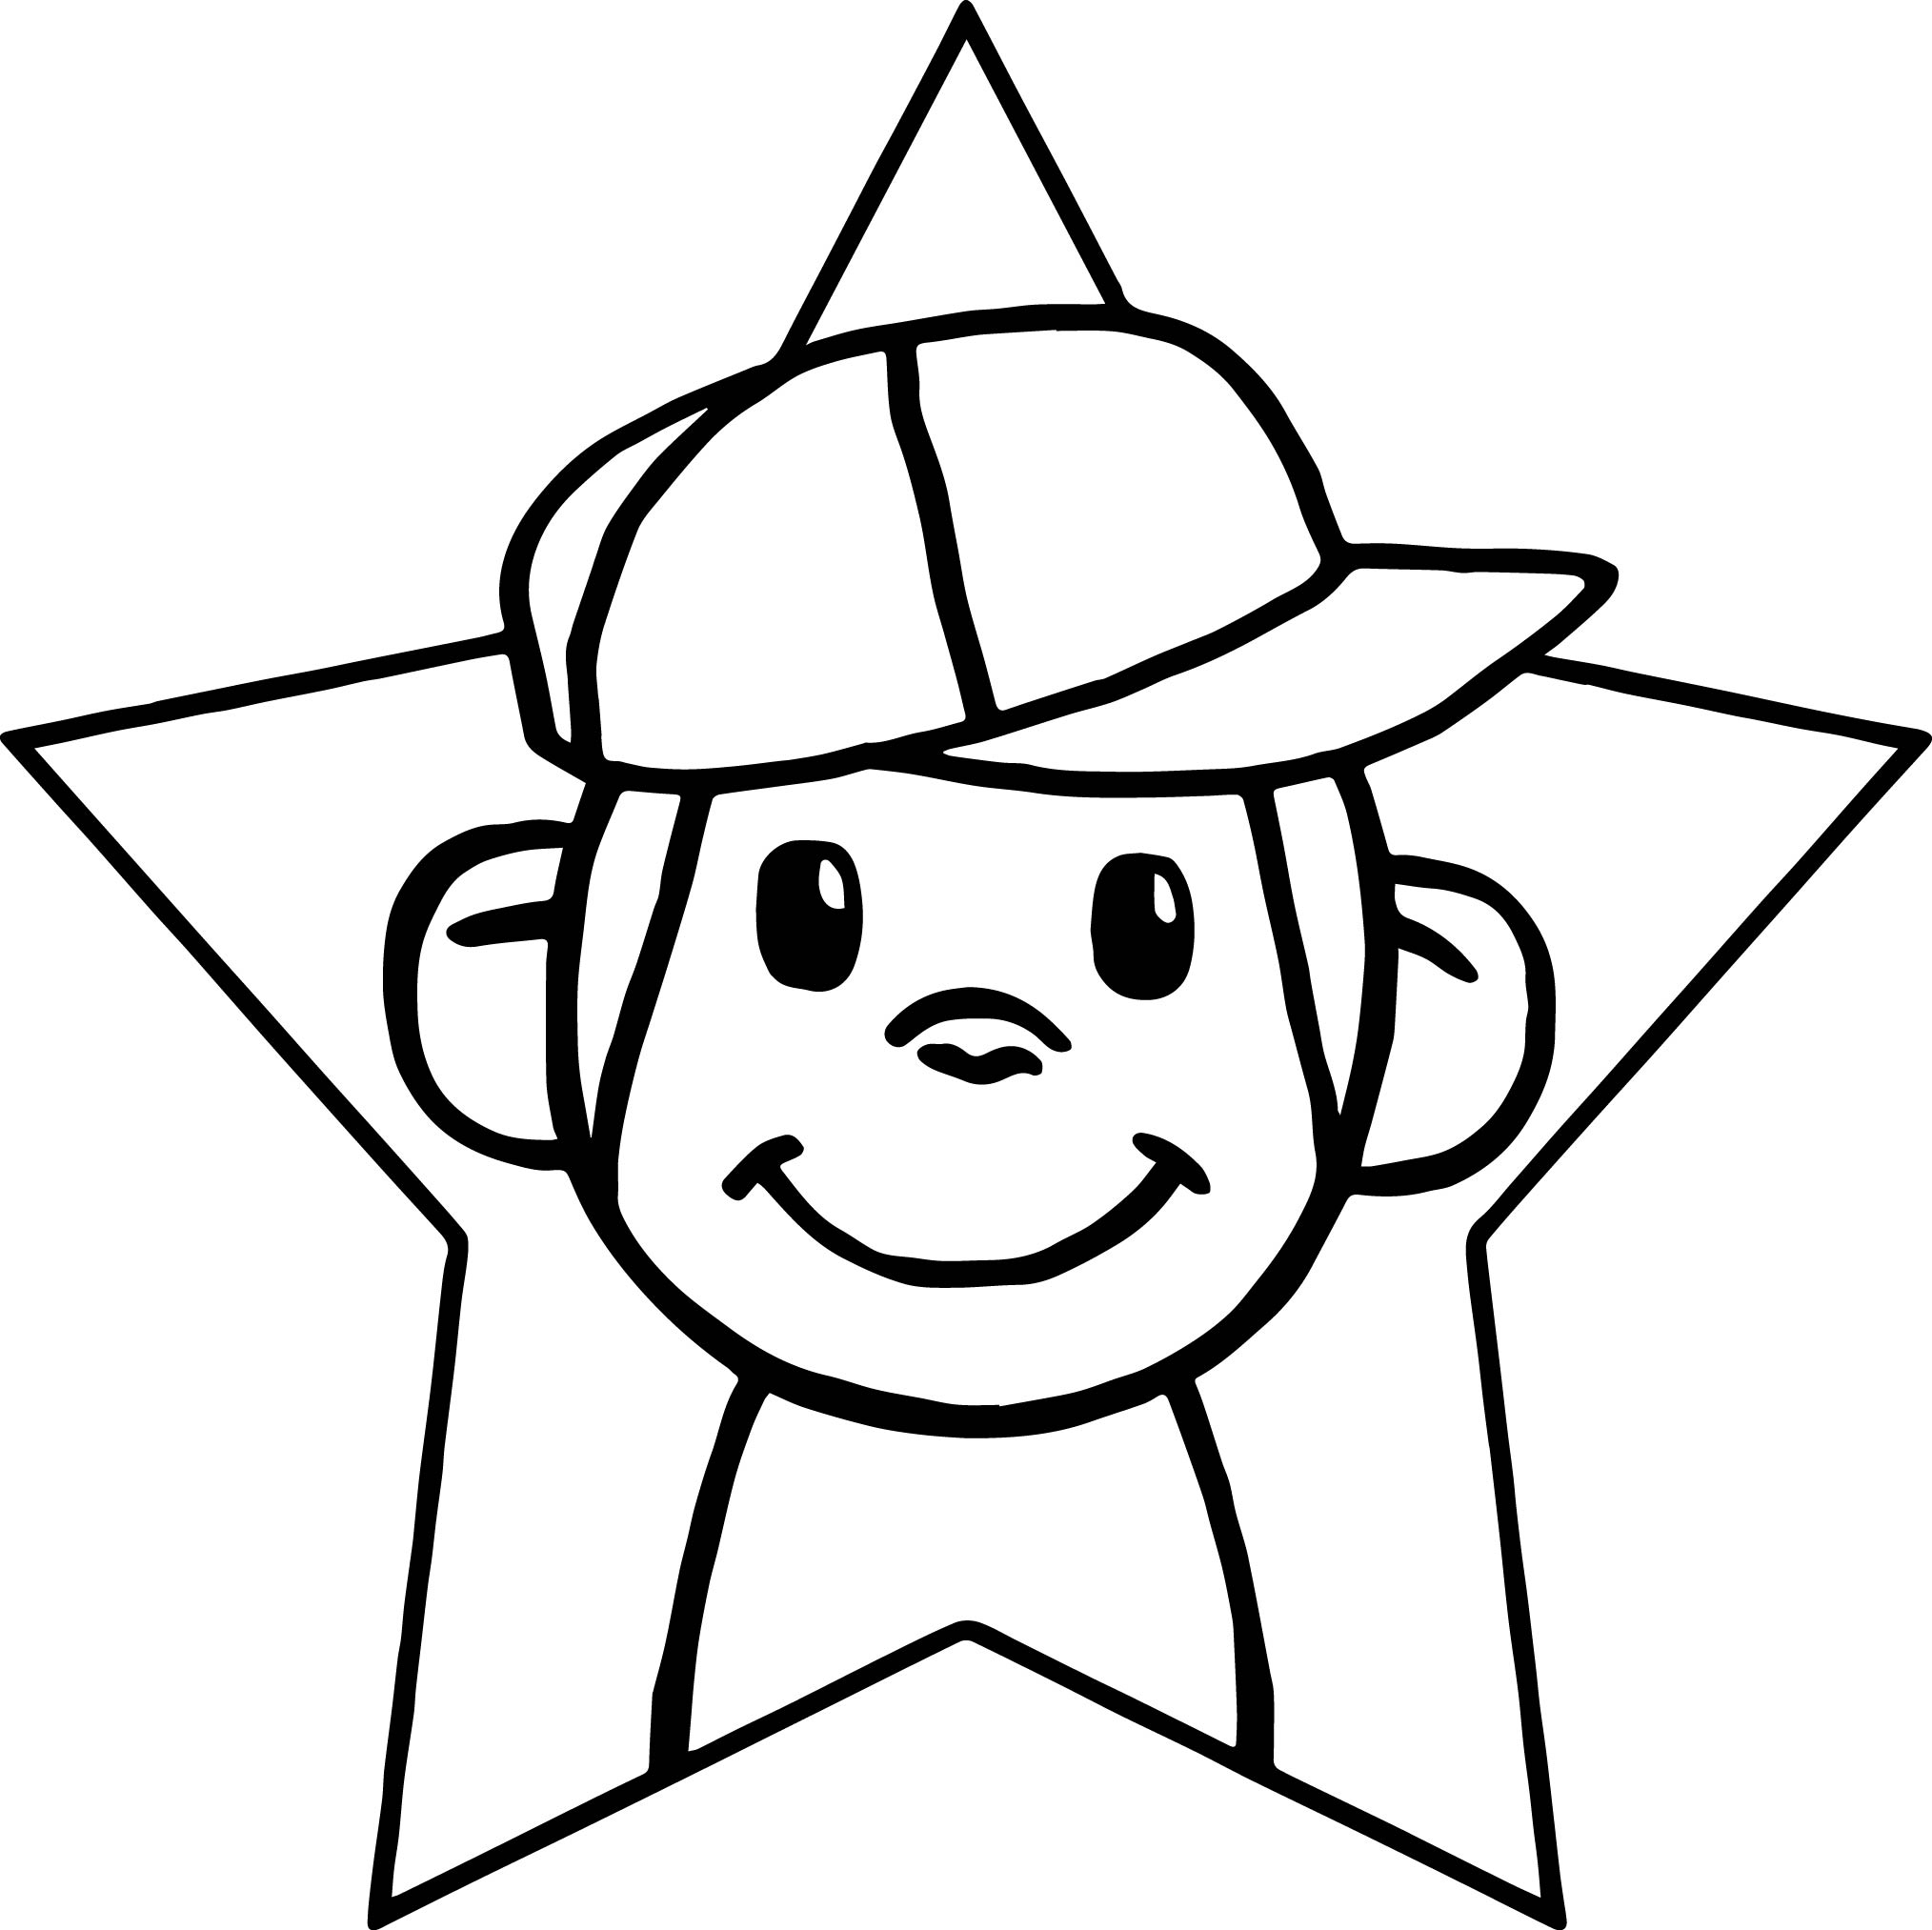 happy star monkey boy coloring page wecoloringpage